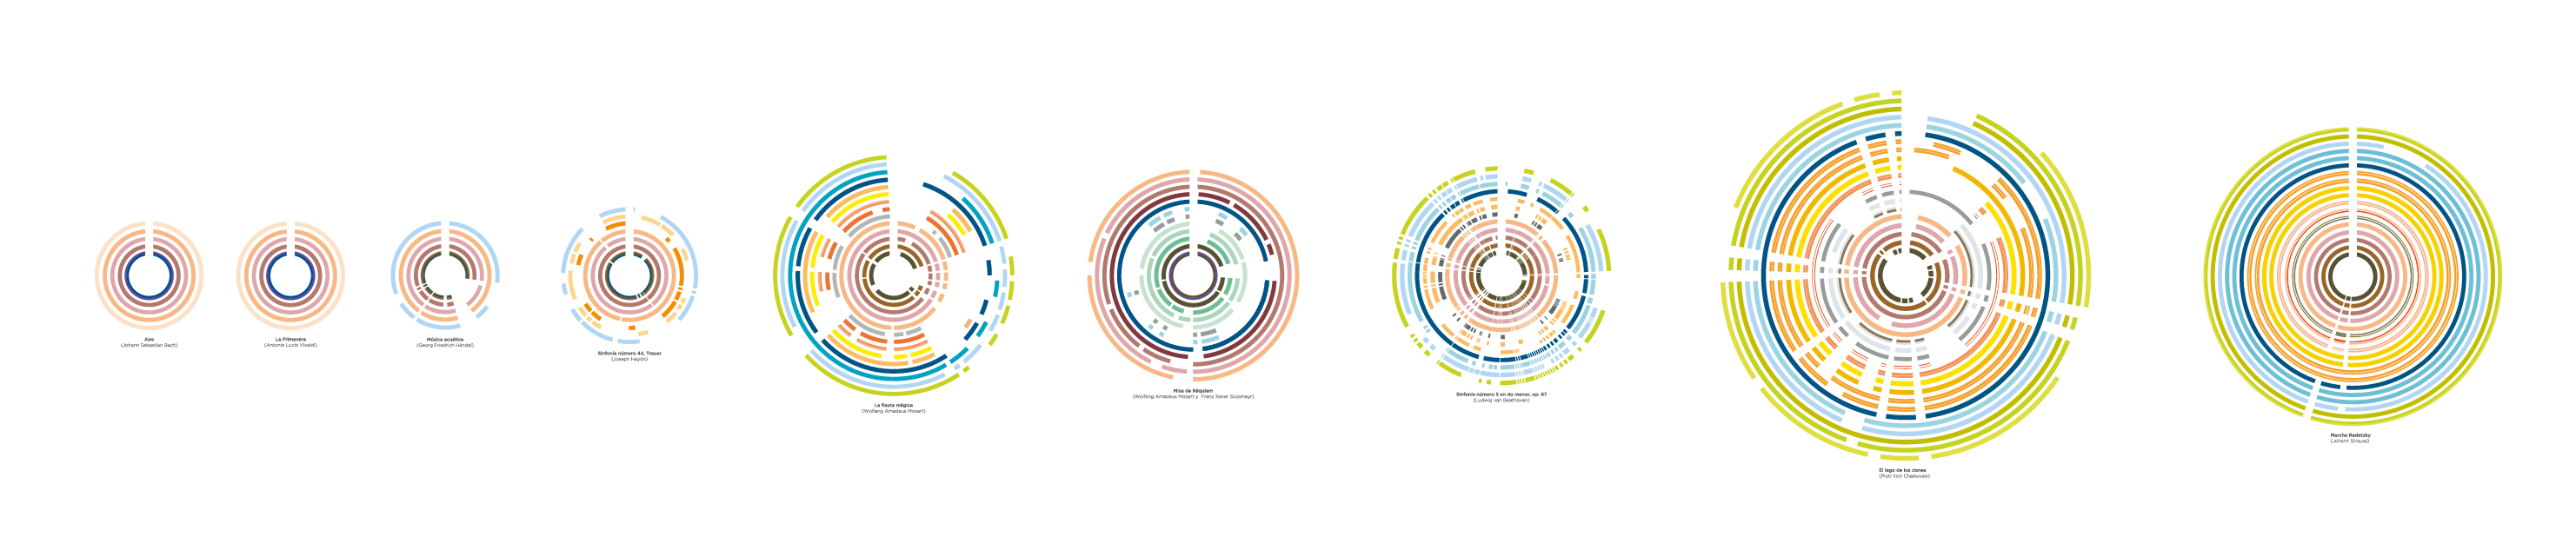 Data visualizations about music, chronological music pieces distribution